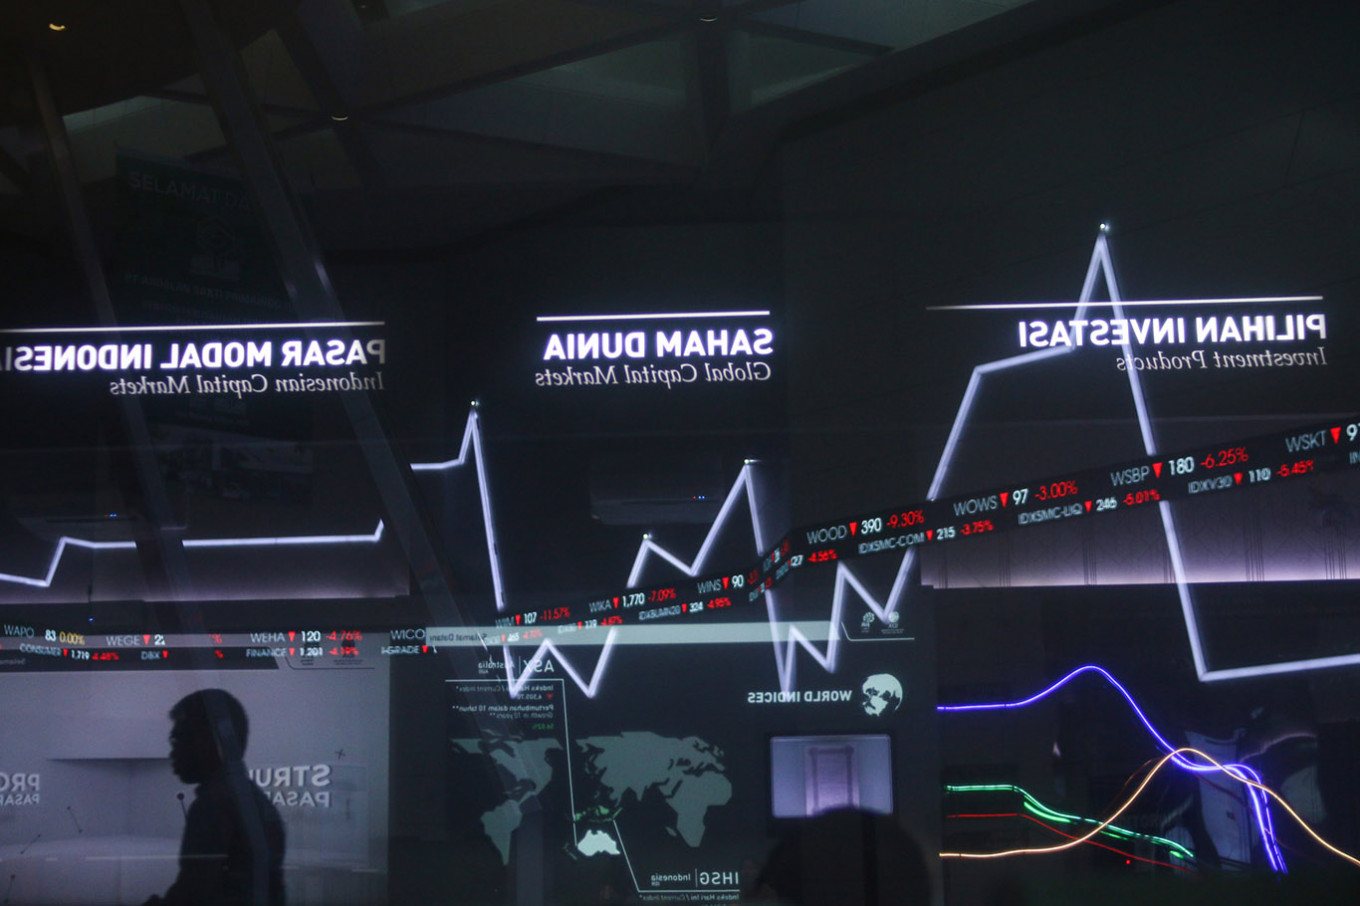 Trading halted third time in week as stocks touch 5-year low, rupiah breaks Rp 15,000 to dollar